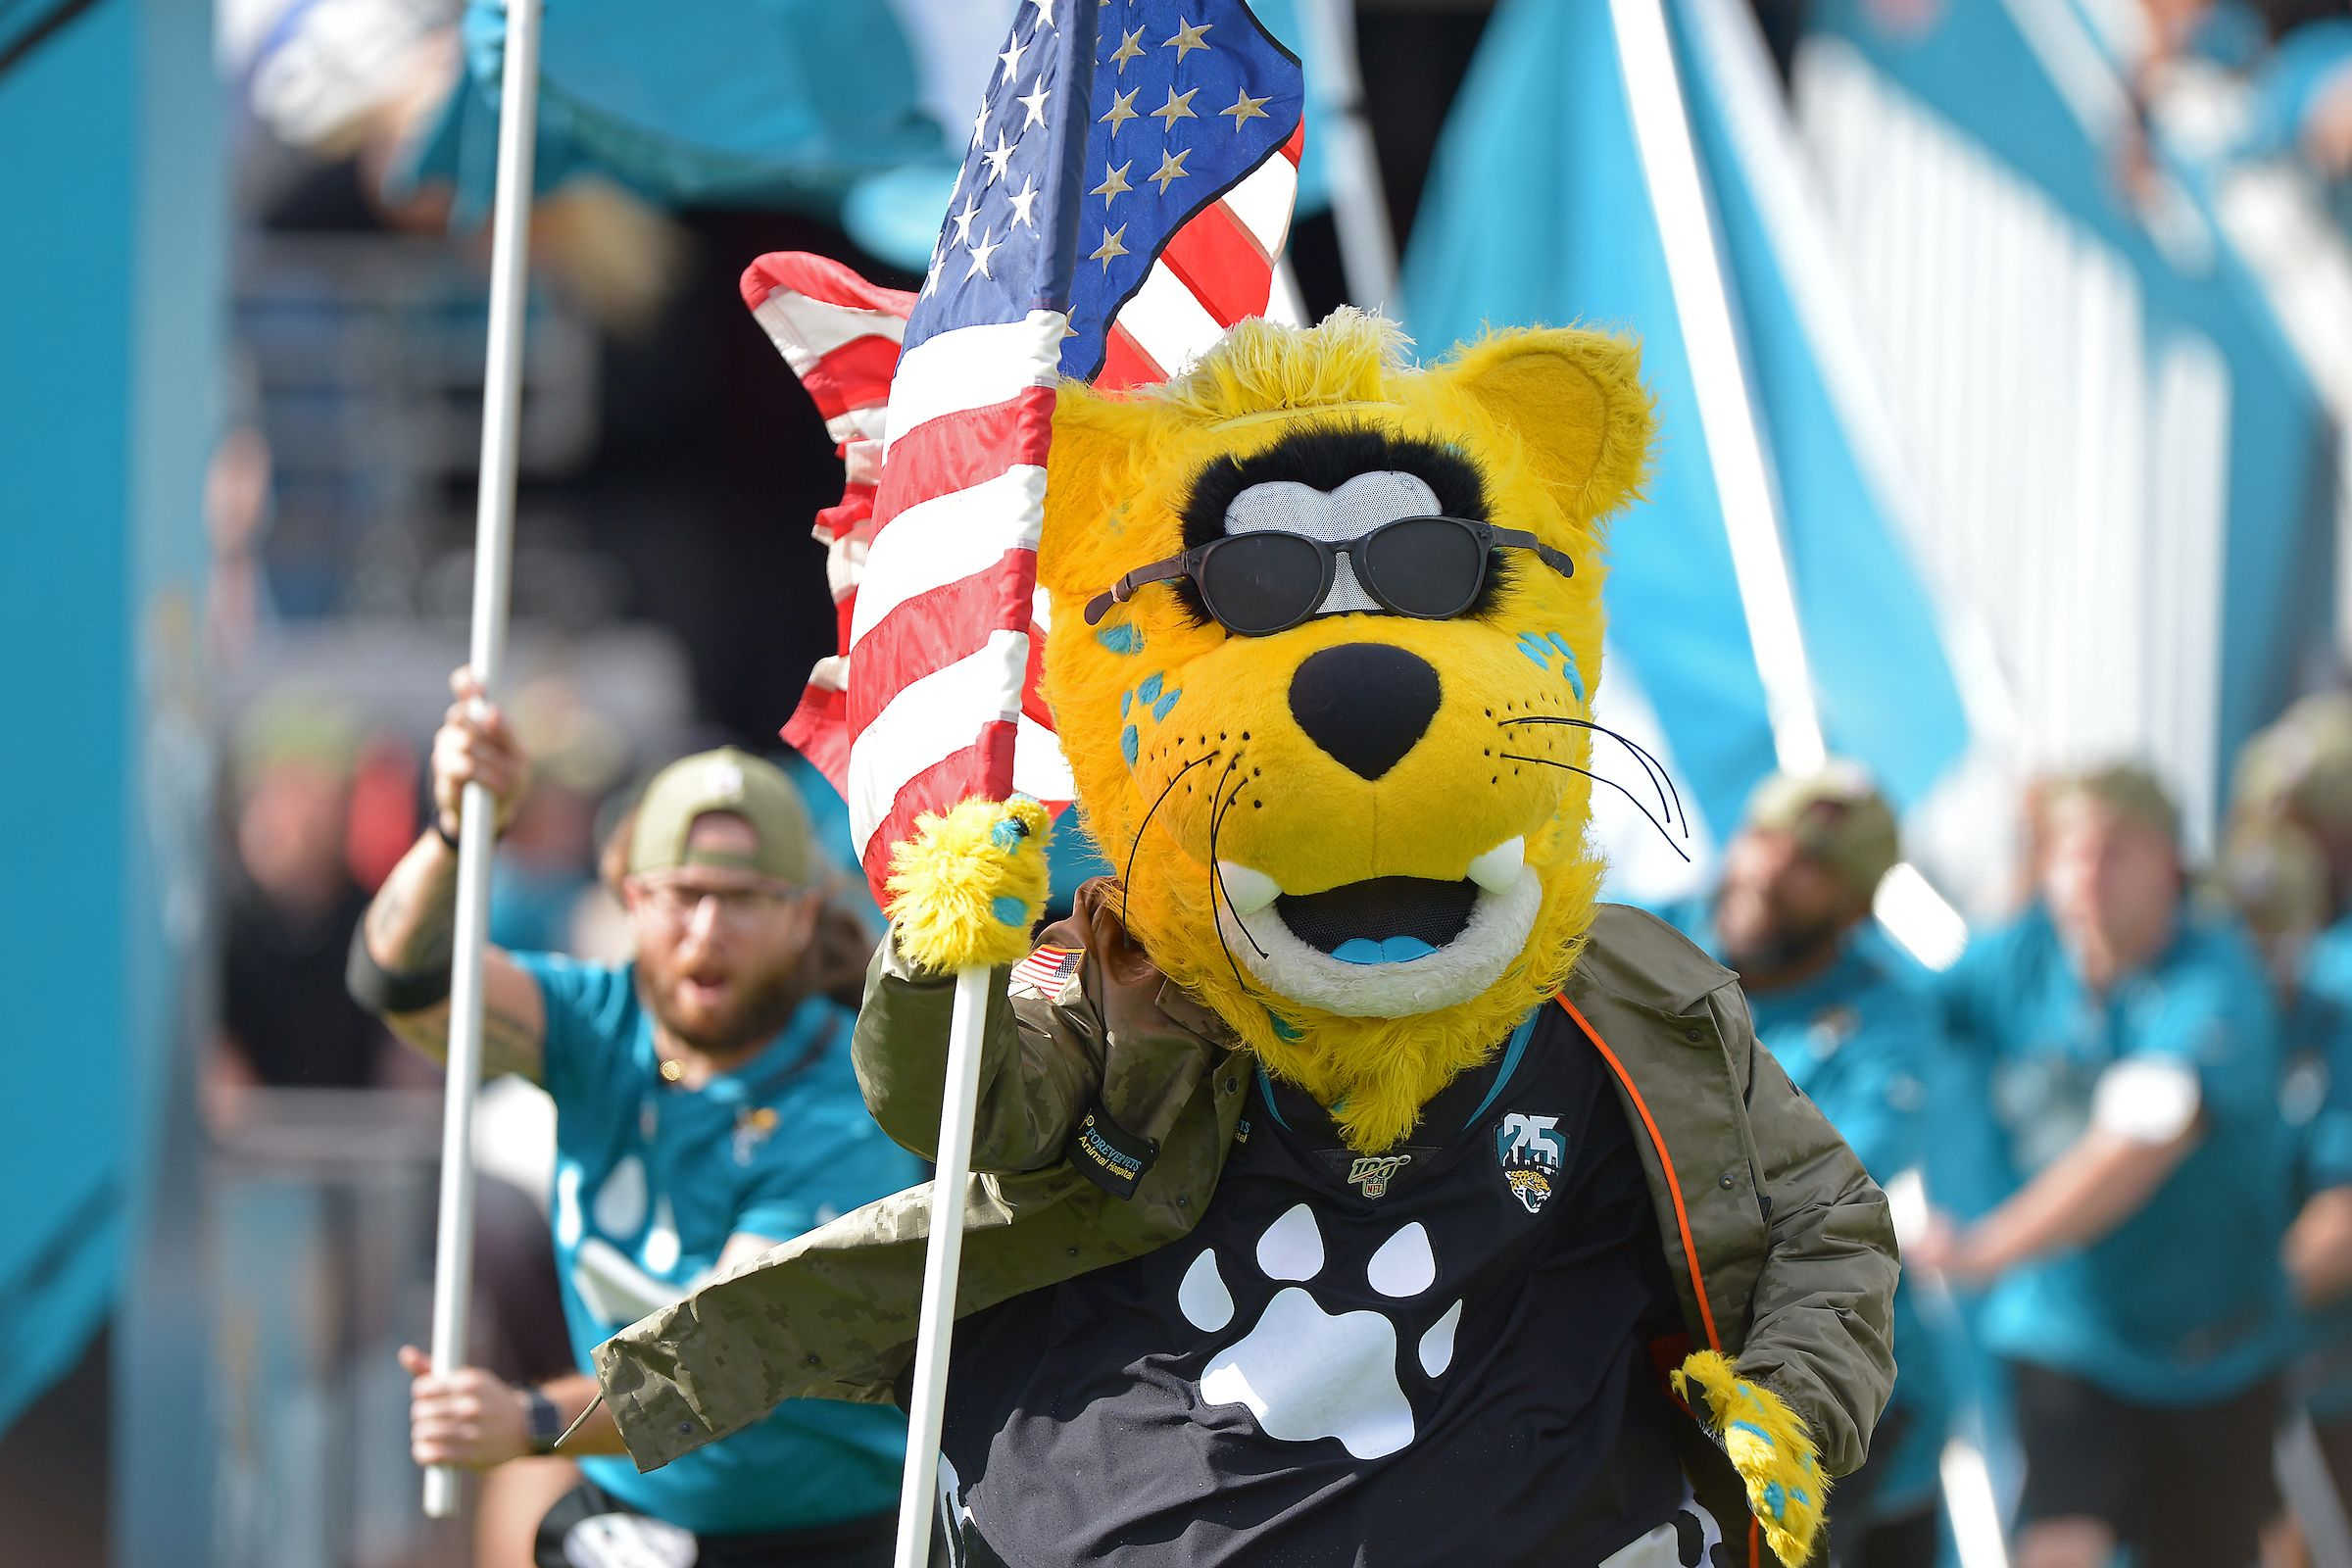 Jacksonville Jaguars mascot Jaxson de Ville carries an American flag onto the field before kick-off against the Tampa Bay Buccaneers in an NFL game, Sunday, Dec. 1, 2019 in Jacksonville, Fla. (Rick Wilson/Jacksonville Jaguars)